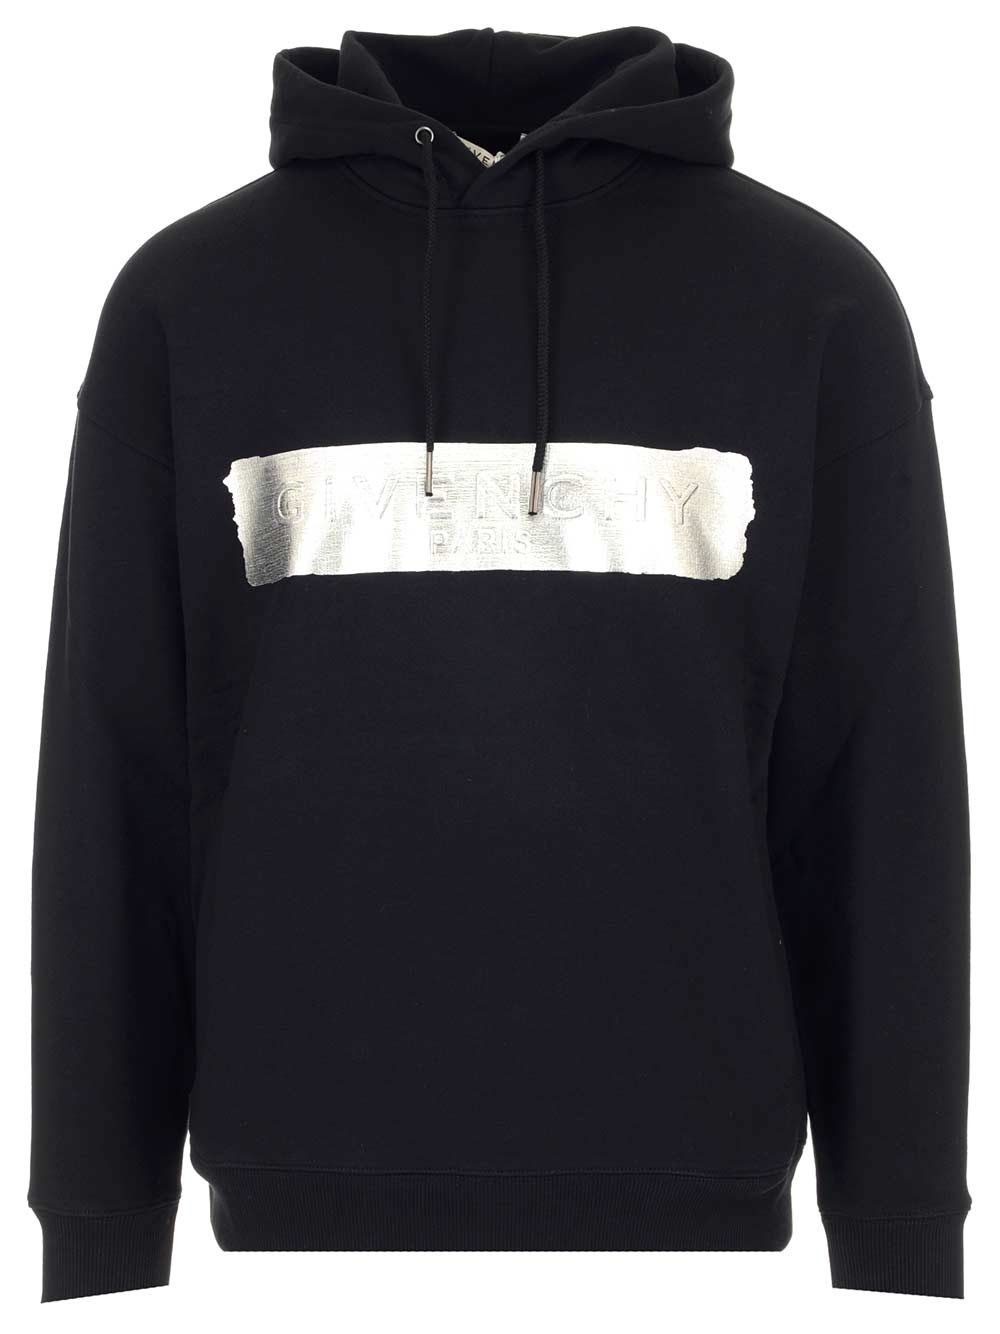 Givenchy GIVENCHY MEN'S BMJ0A230AF001 BLACK OTHER MATERIALS SWEATSHIRT